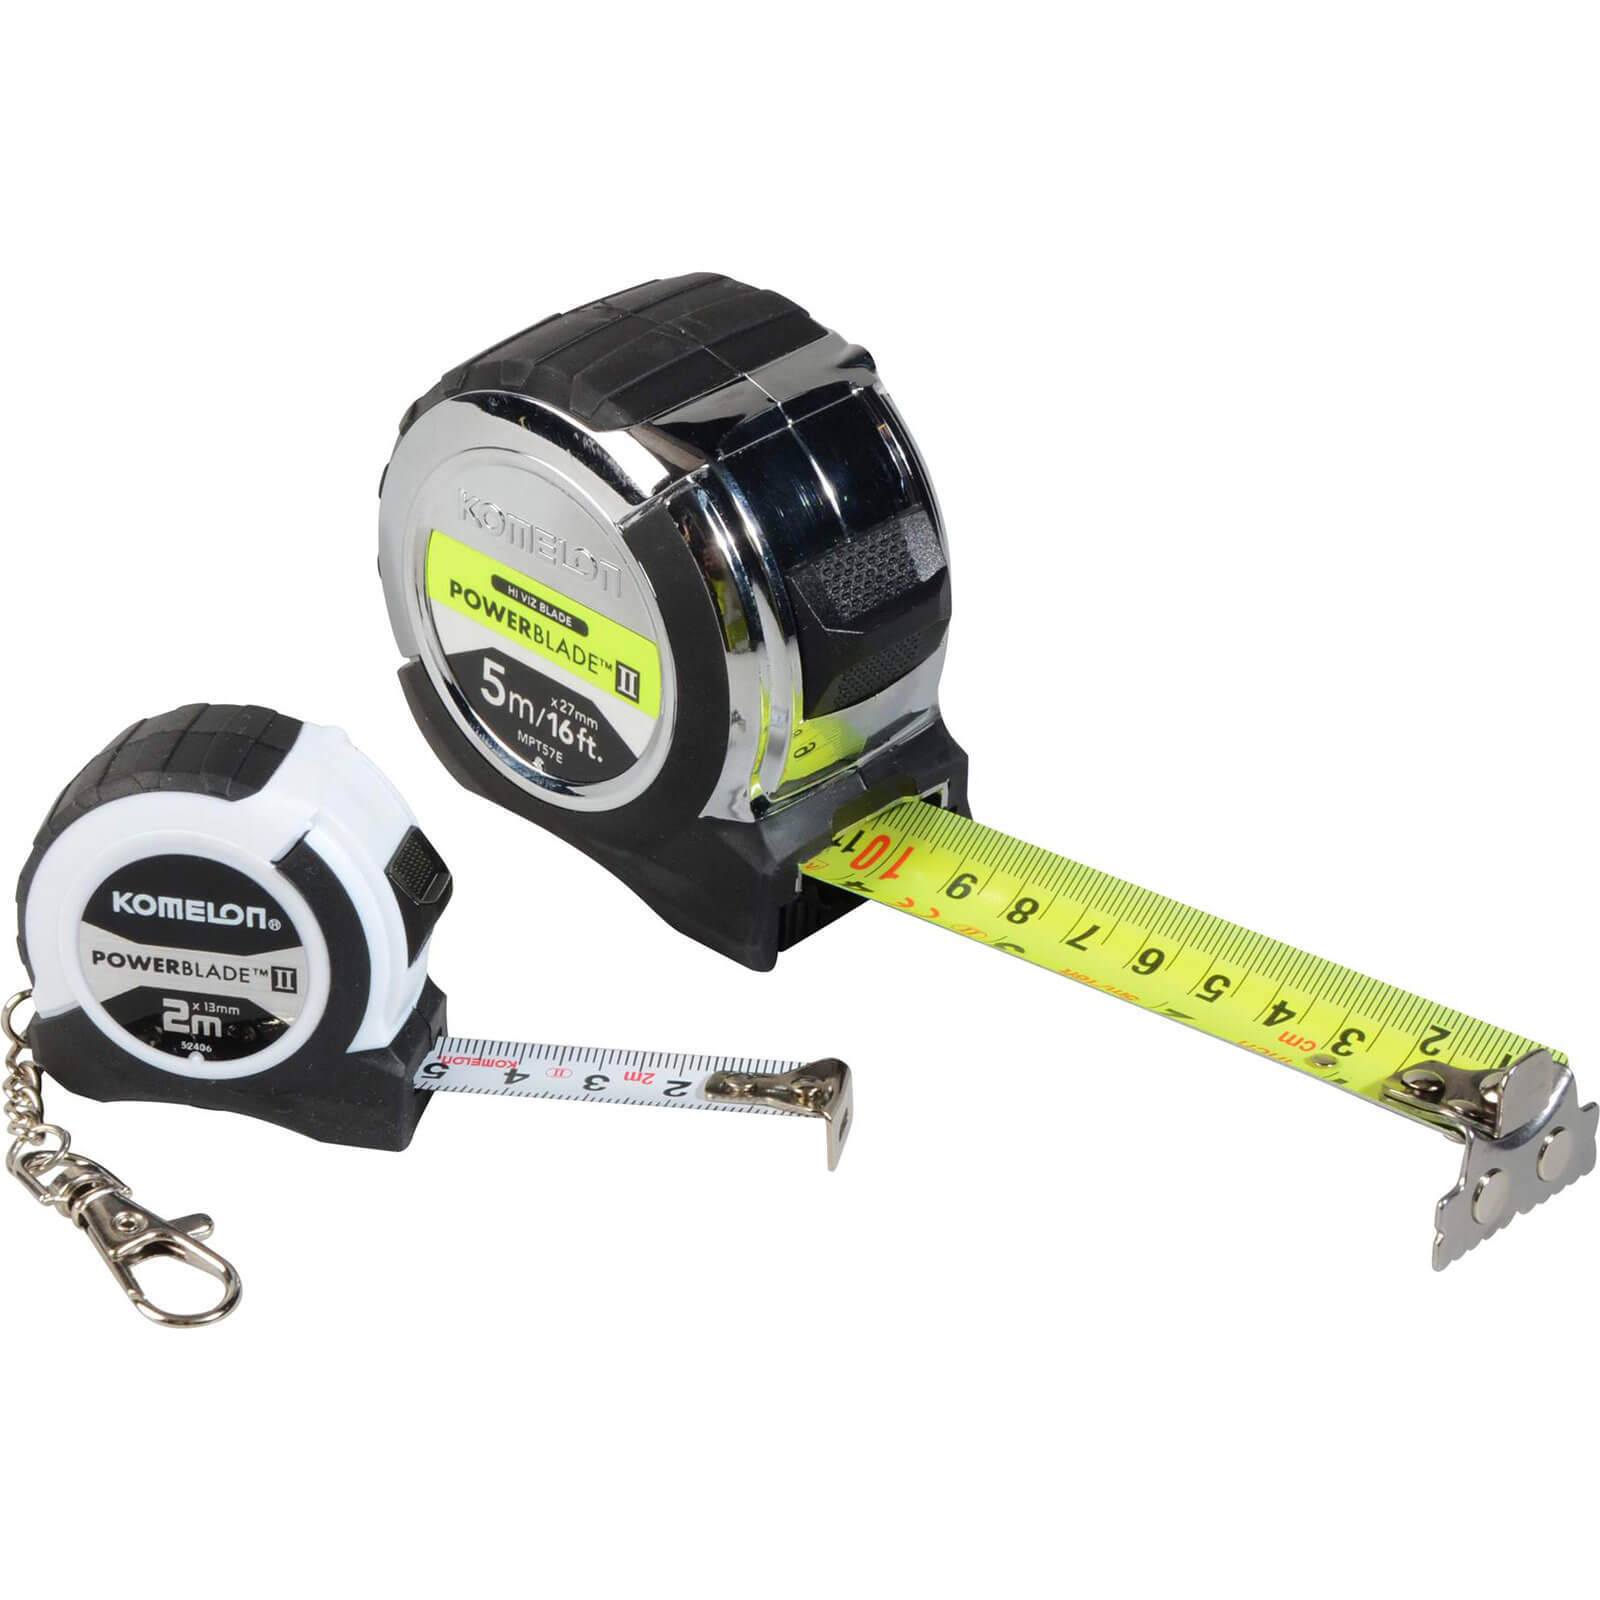 Image of Komelon 2 Piece Powerblade Tape Measure Set